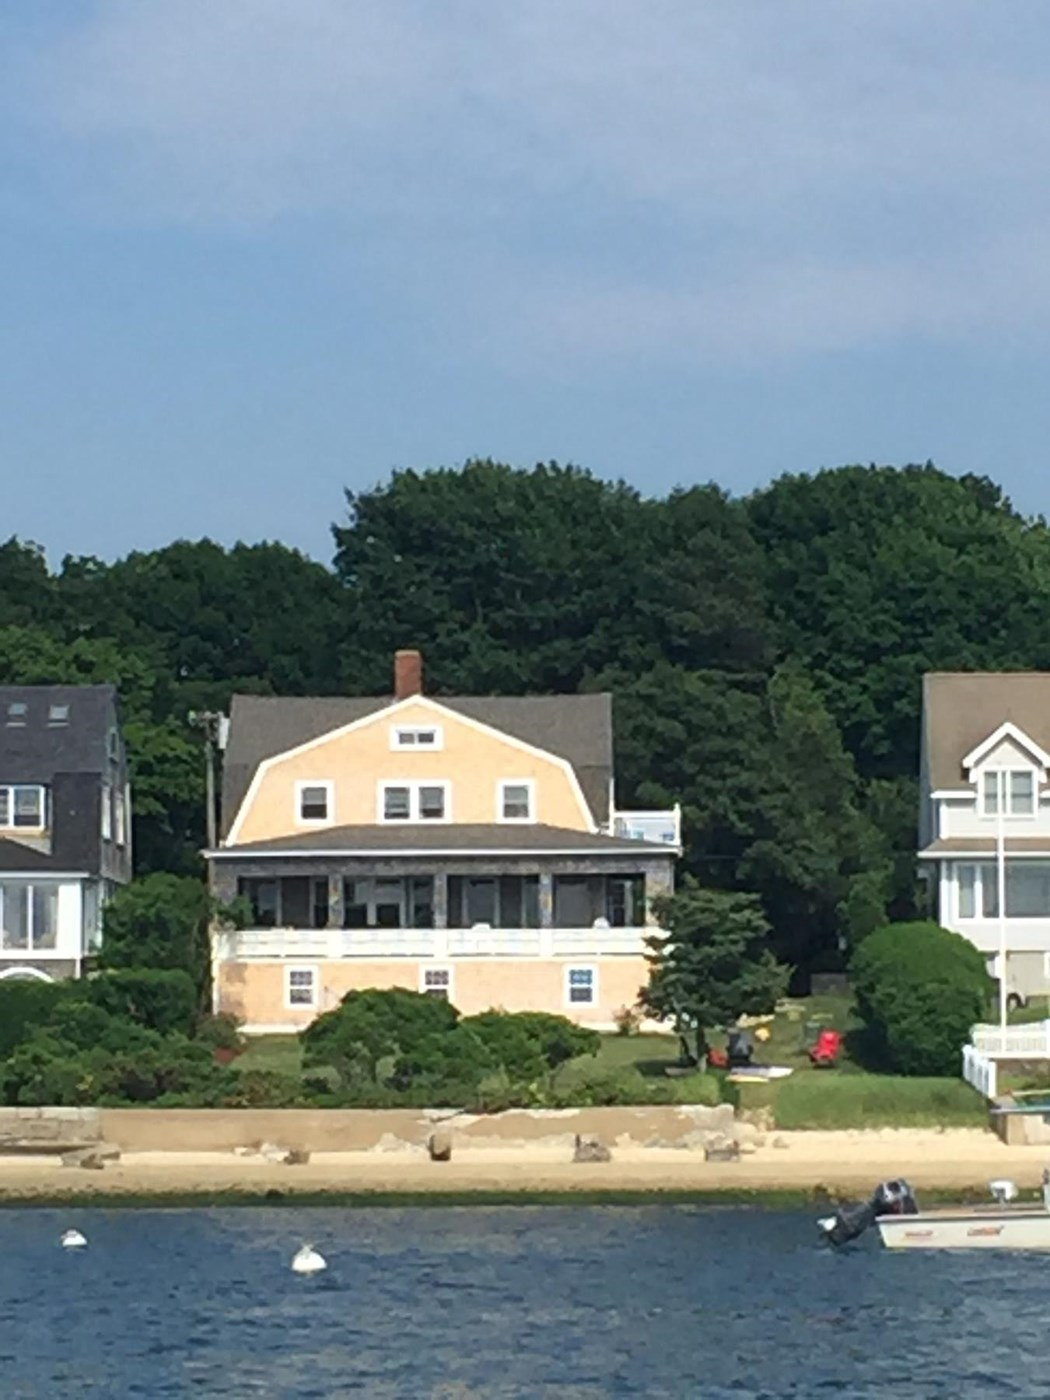 Bourne Vacation Rental home in Cape Cod MA 02553, on private beach ...